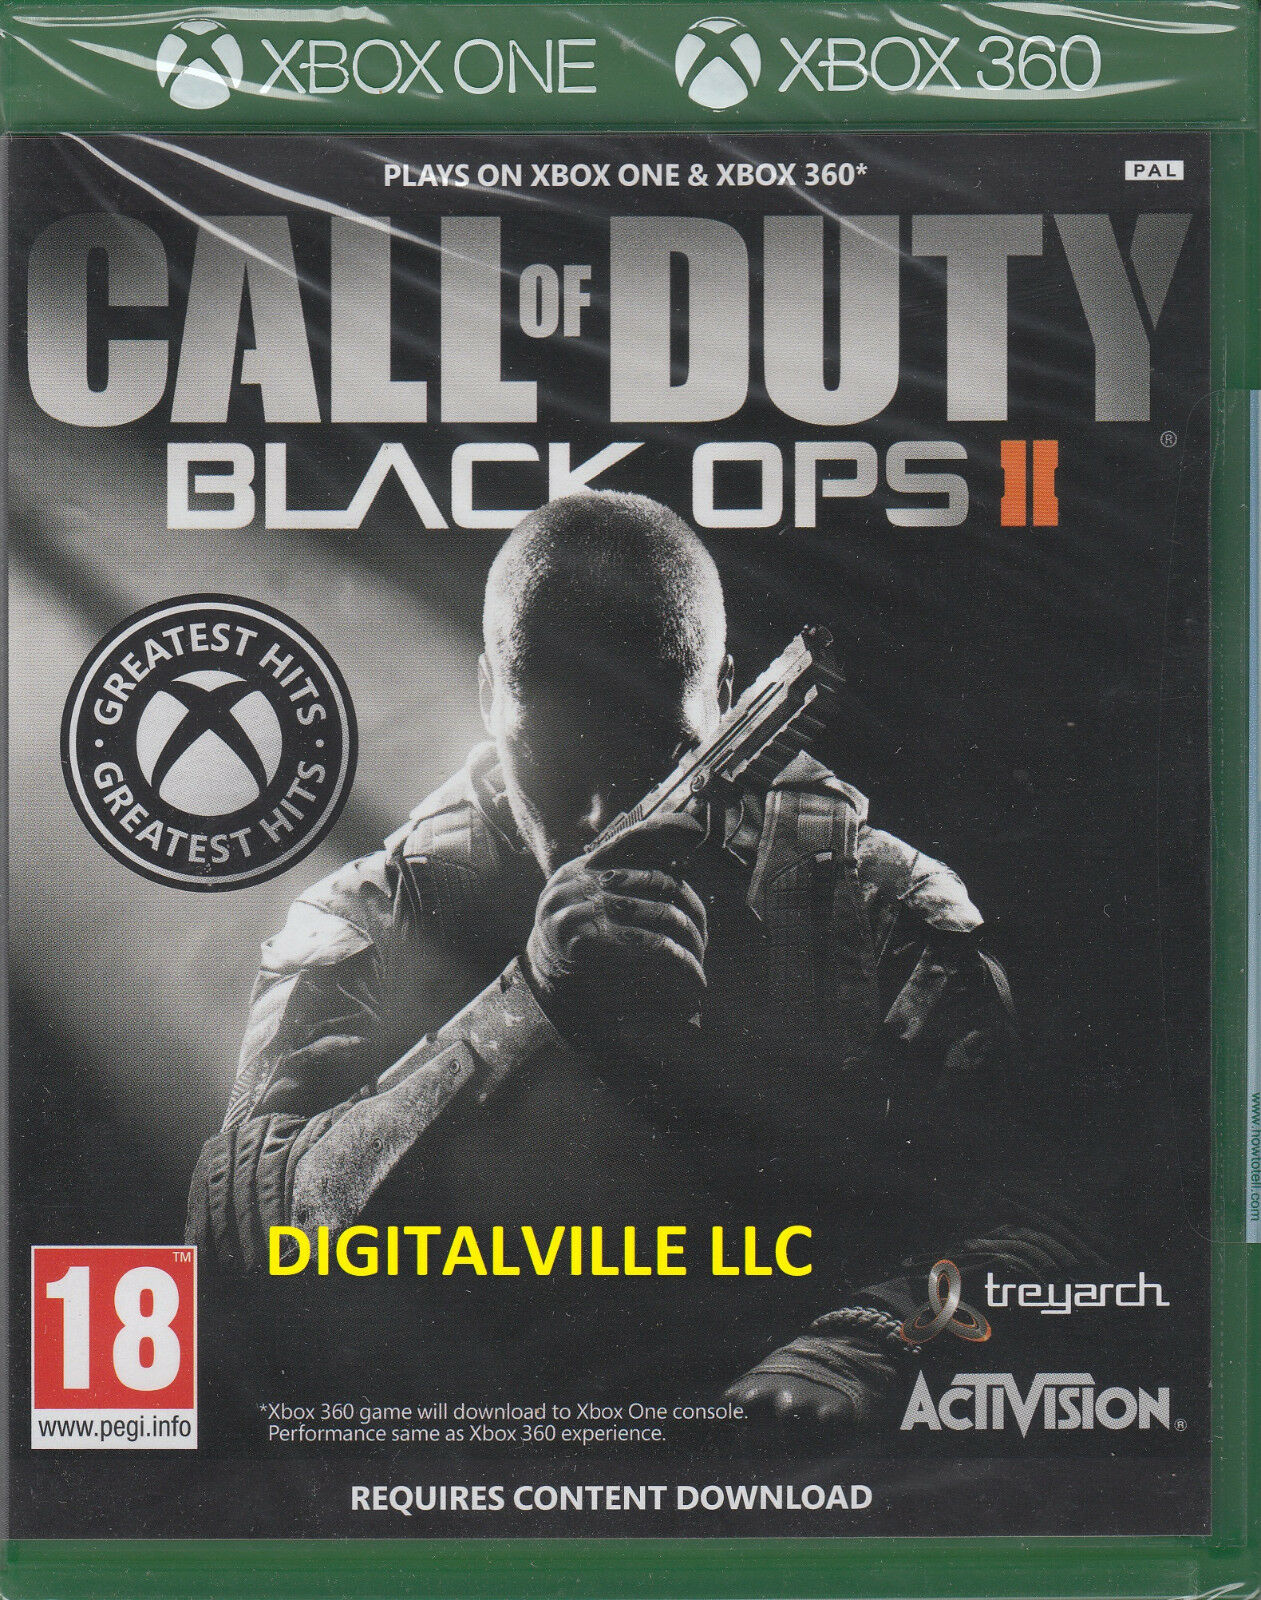 Call Of Duty Black Ops Ii Digital Download Card For Xbox 360 For